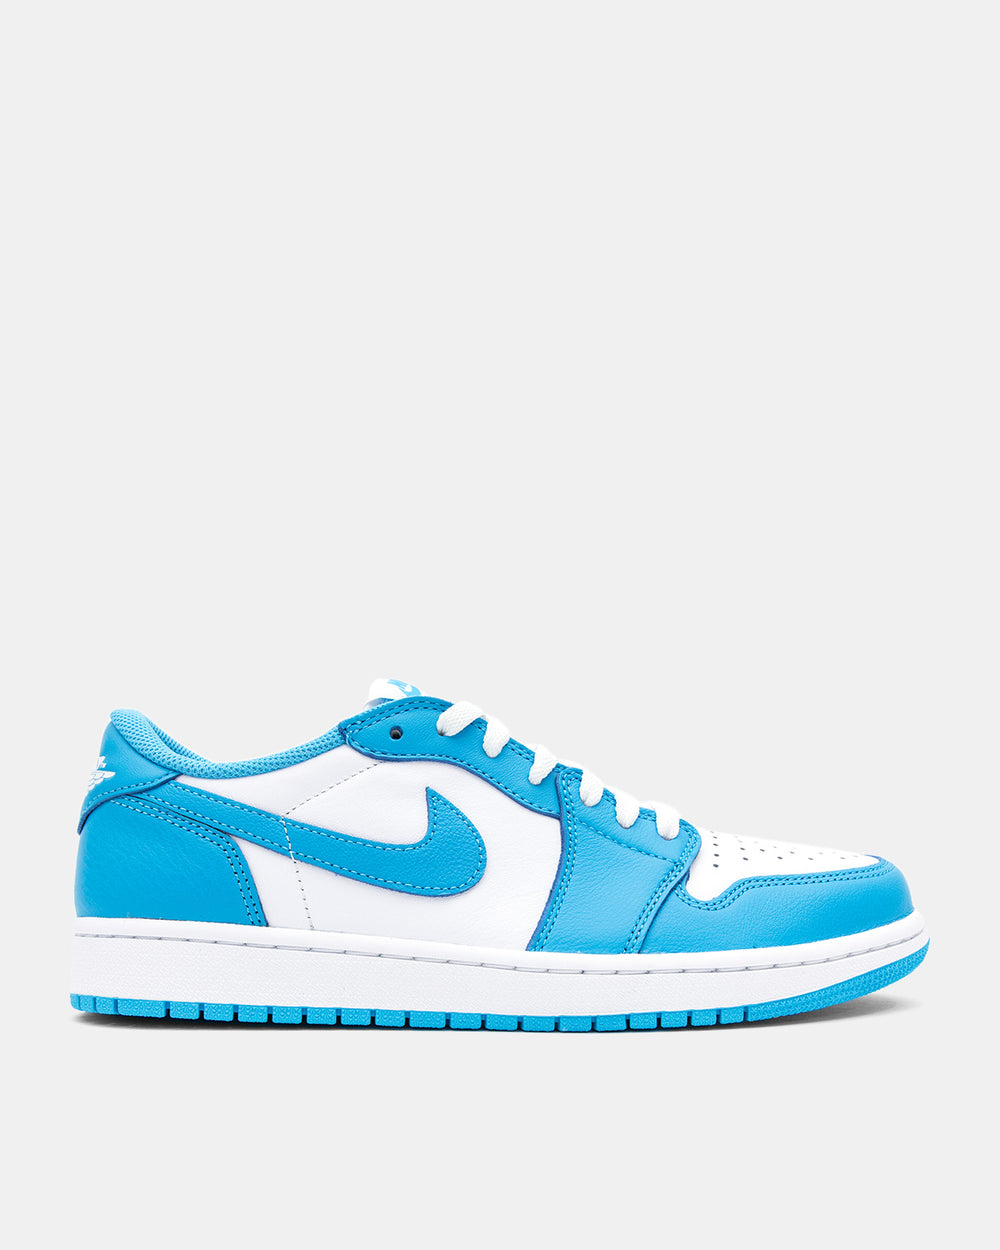 Nike SB - Nike SB x Air Jordan 1 Low 'UNC' (Dark Powder Blue | White)